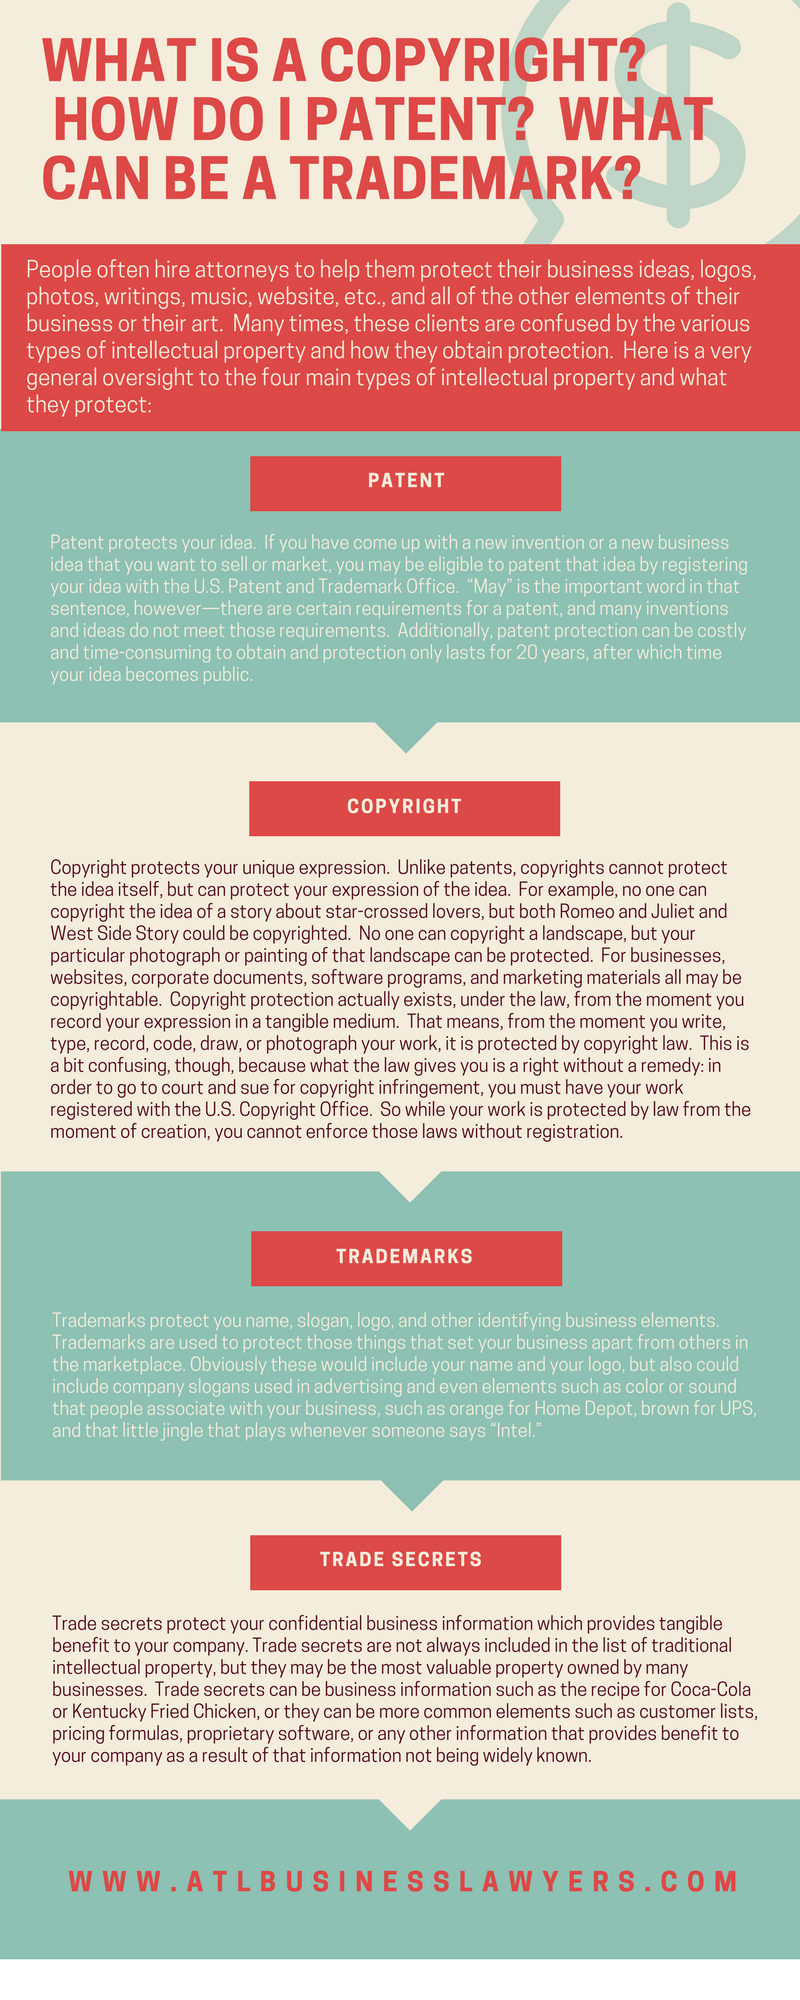 All You Need To Know About Copyright - Infographic